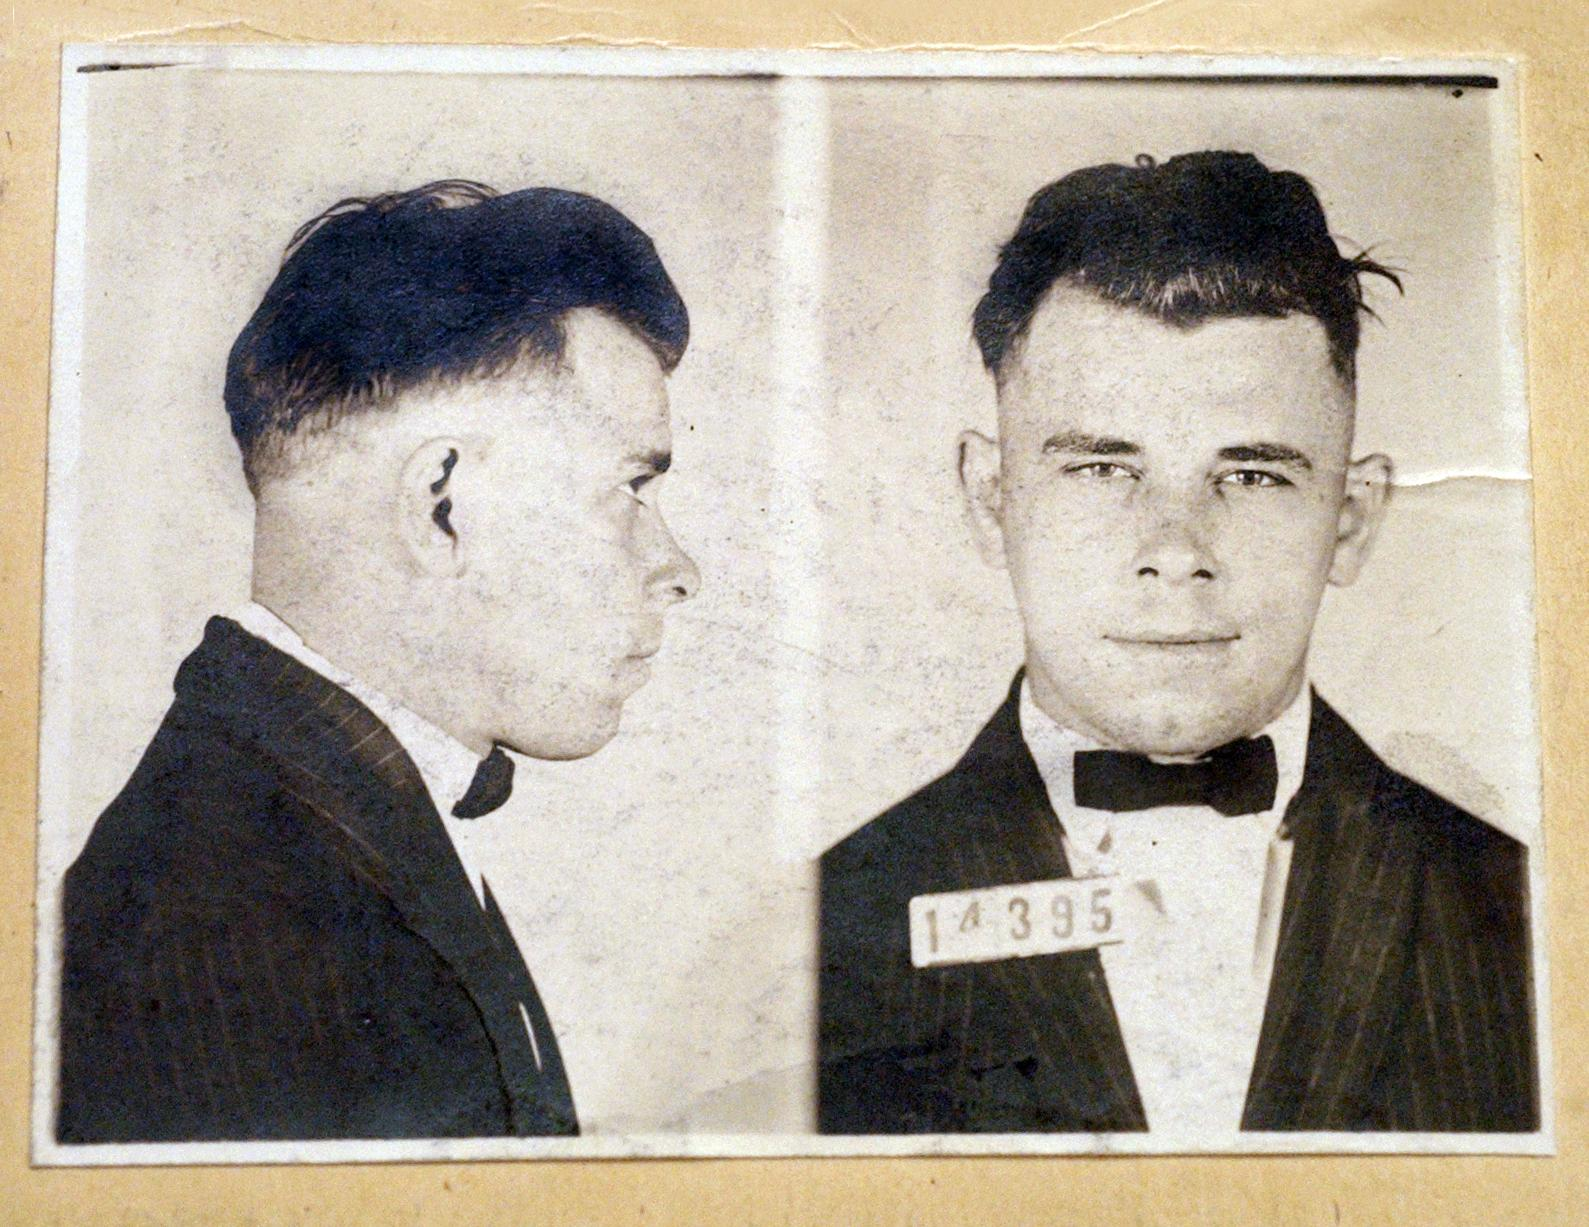 This file photo shows Indiana Reformatory booking shots of John Dillinger, stored in the state archives, and shows the notorious gangster as a 21-year-old. (AP Photo / The Indianapolis Star, Charlie Nye, File)